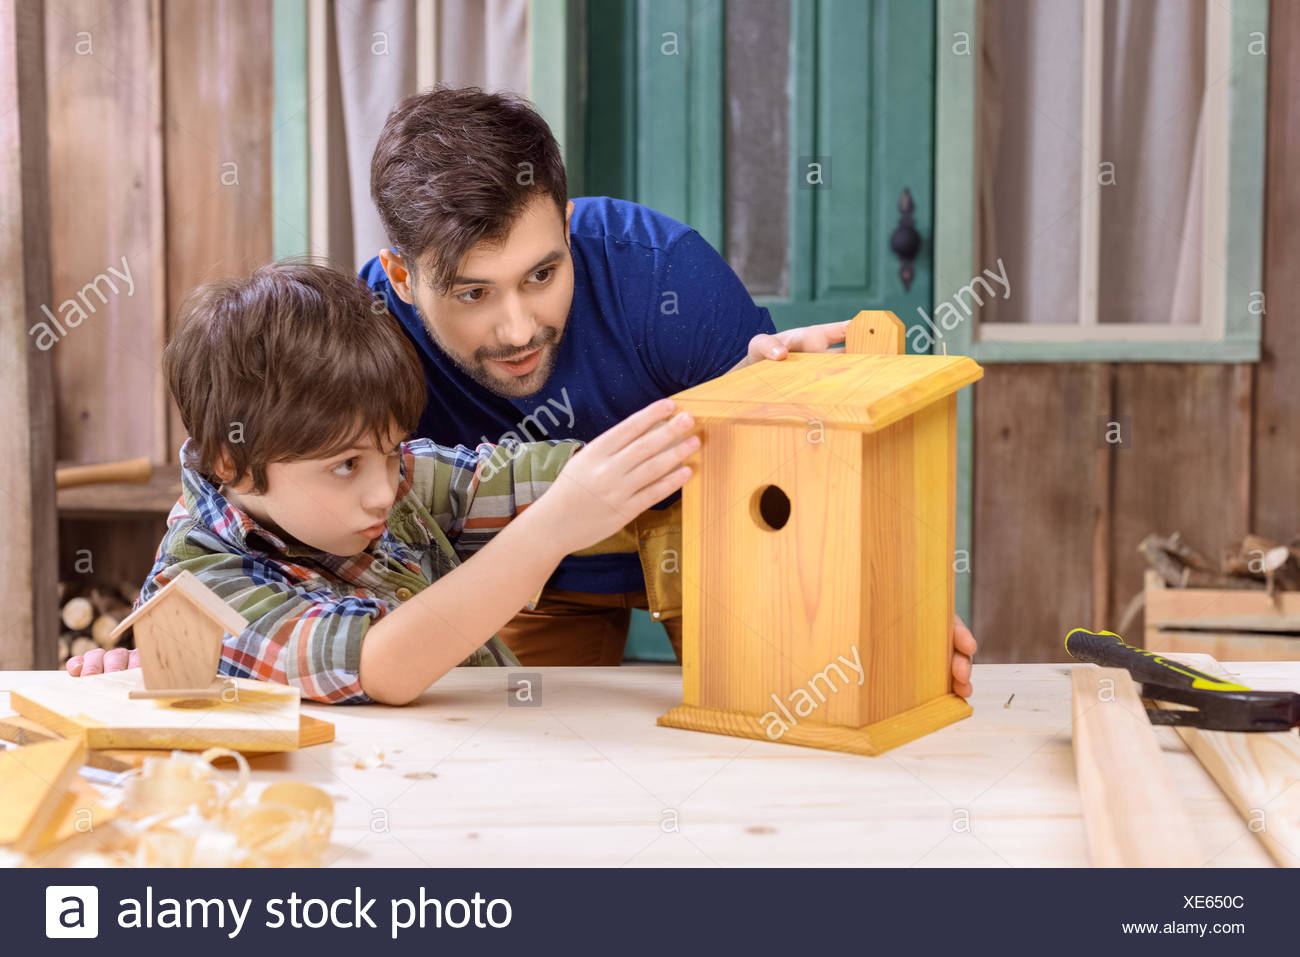 Concentrated father and son making wooden birdhouse together in workshop - Stock Image